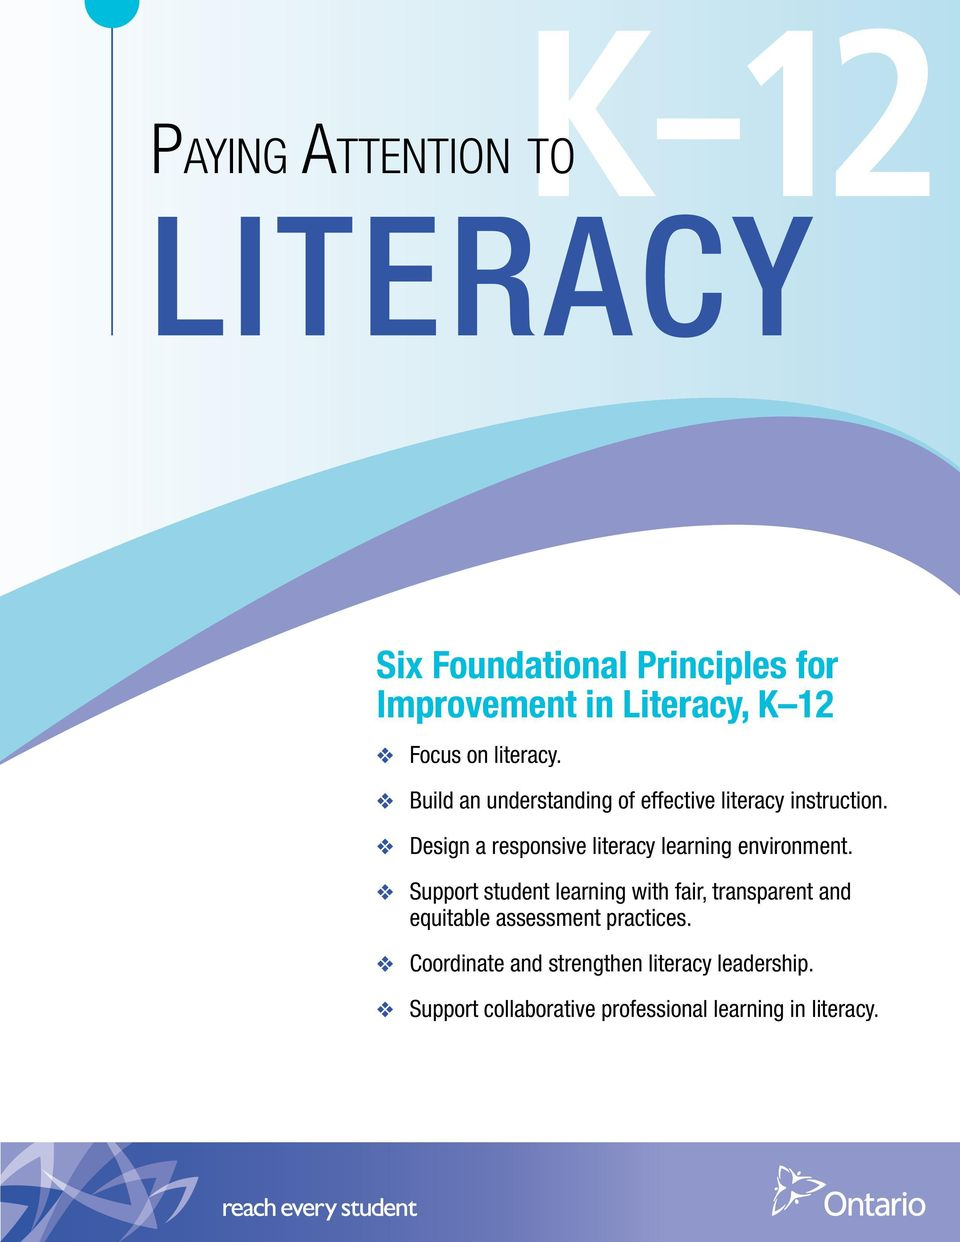 Design a responsive literacy learning environment.